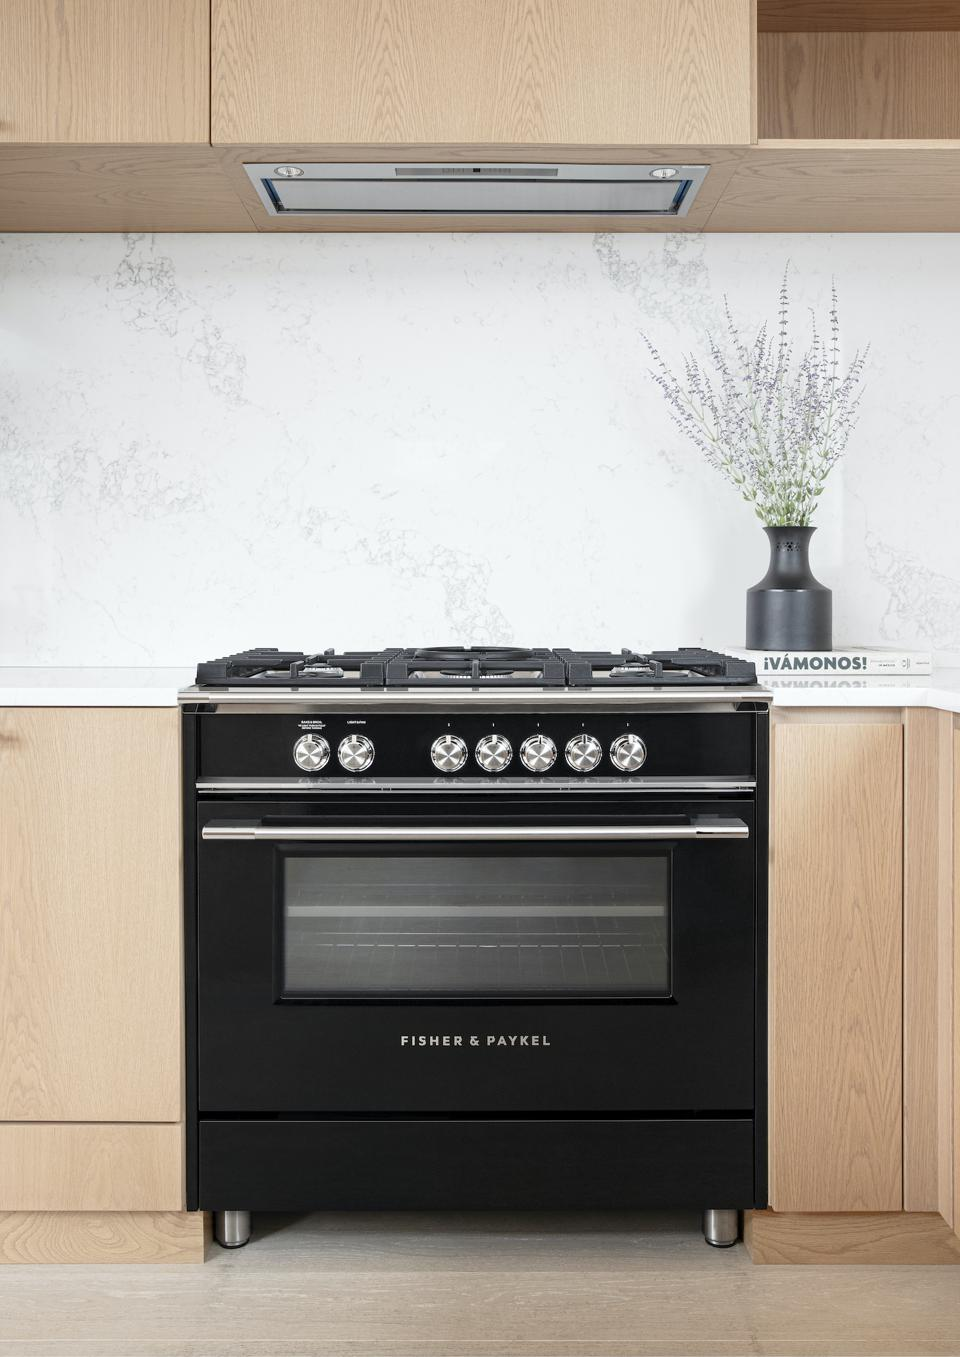 A Fisher & Paykel Stove with their Aerotech™ technology.